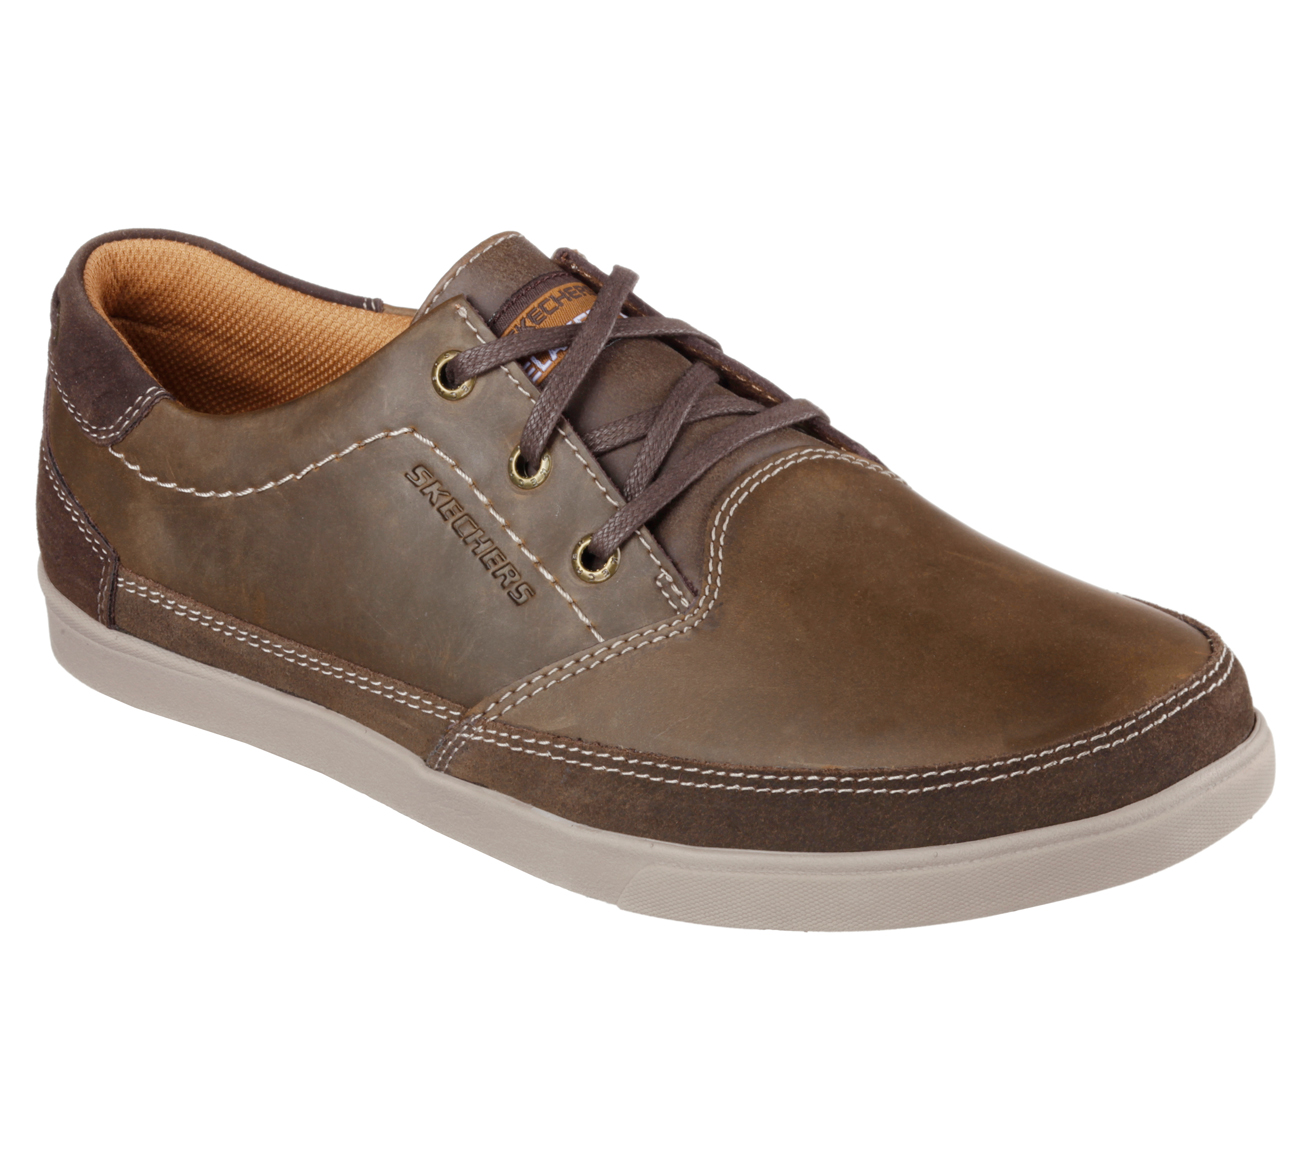 Skechers Relaxed Fit Cardova Sorito Shoe